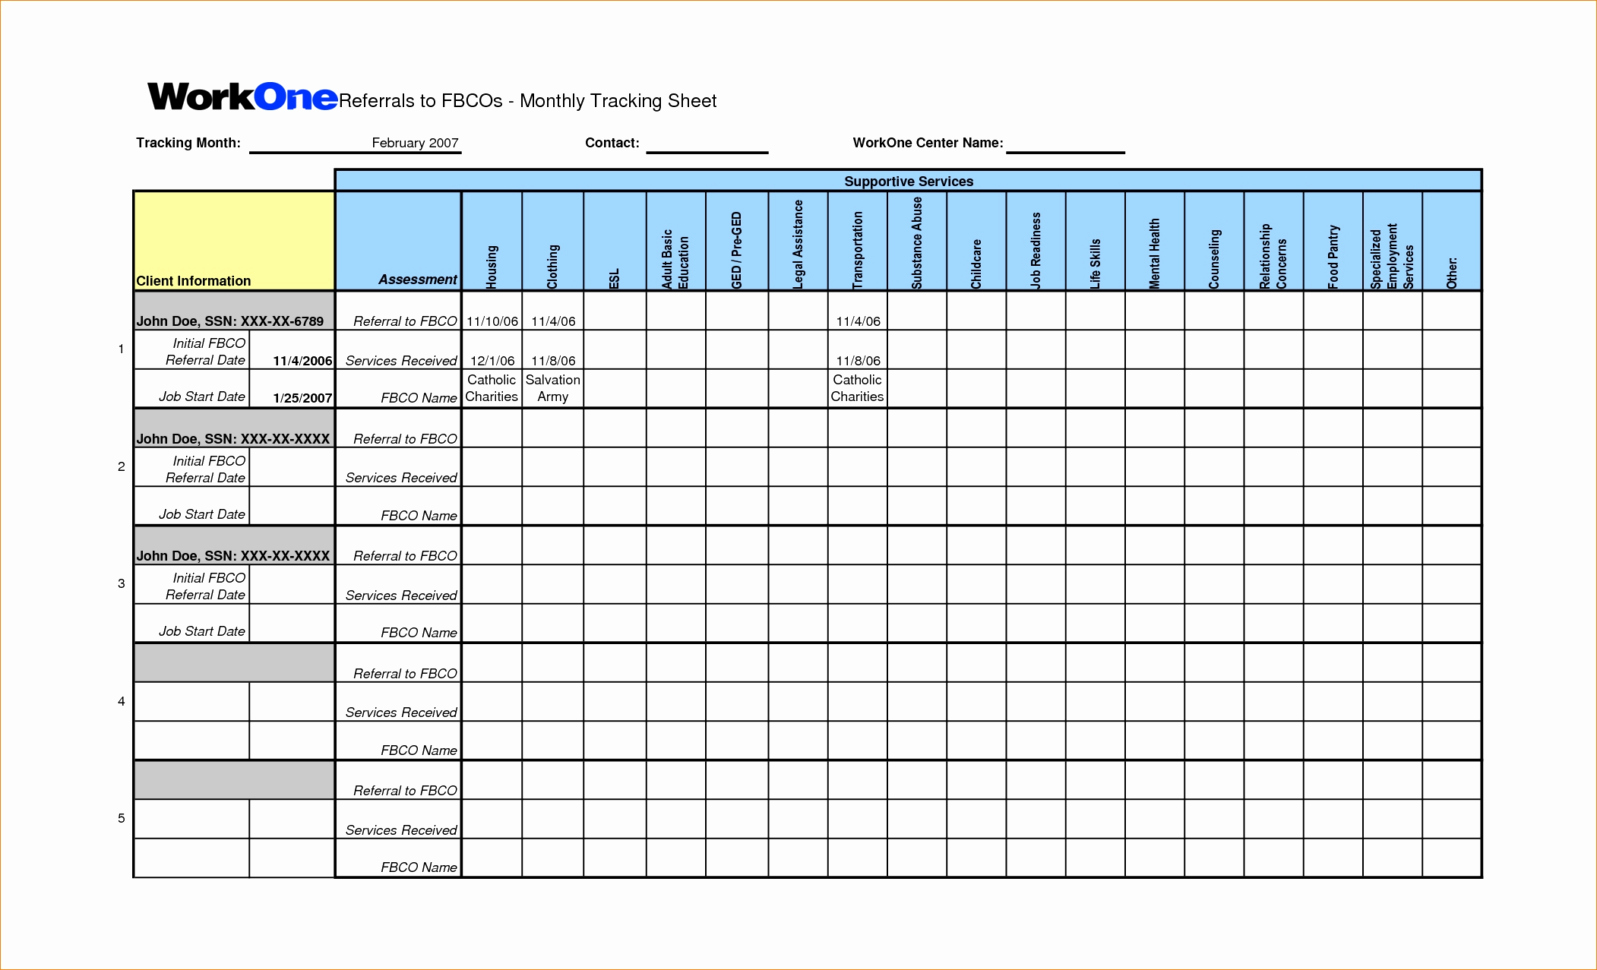 Applicant Tracking Spreadsheet Template Lovely Free Applicant Tracking Spreadsheet Template Spreadsheet